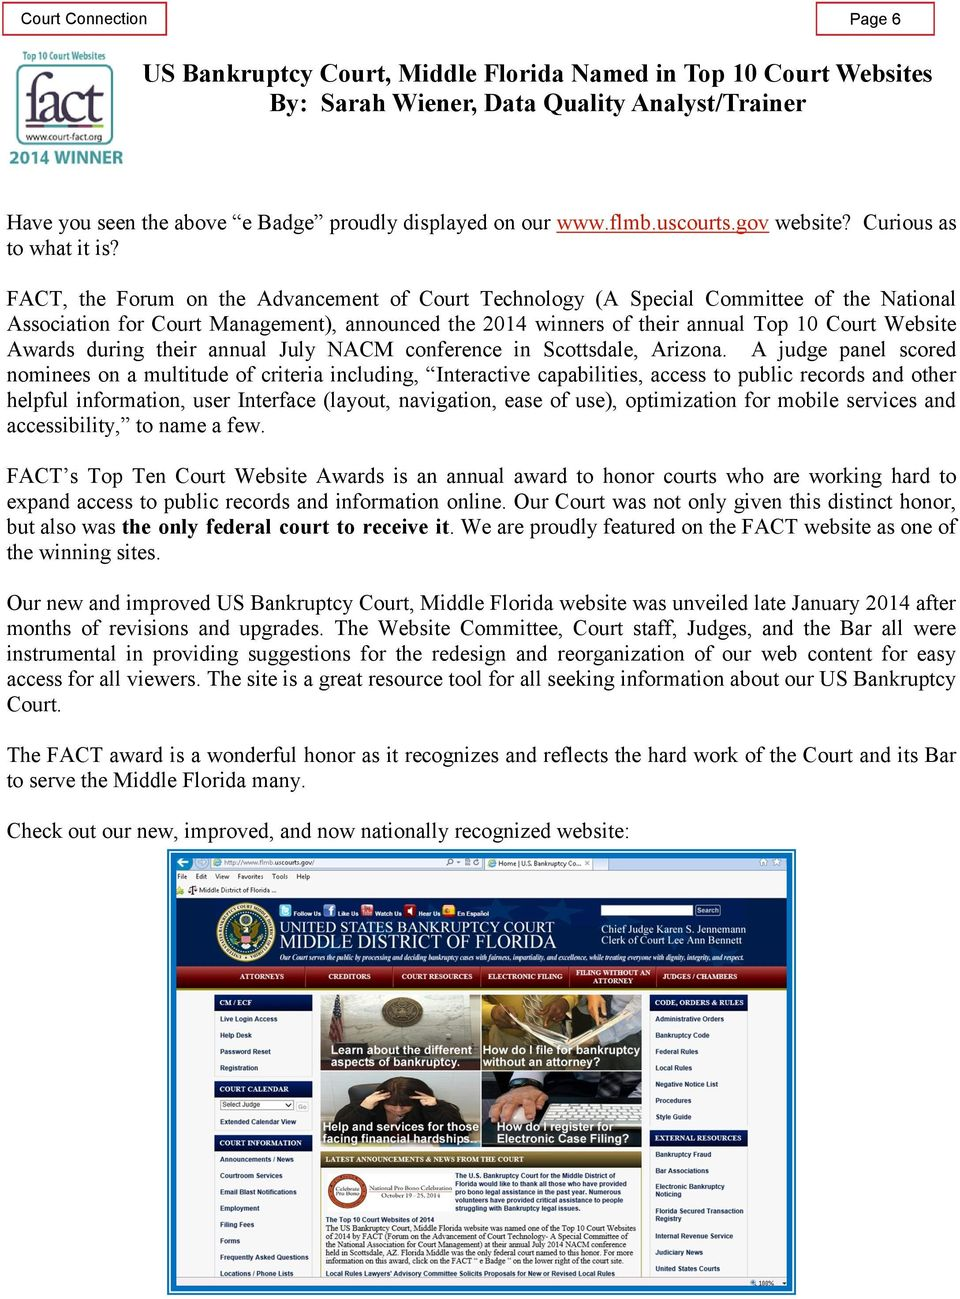 FACT, the Forum on the Advancement of Court Technology (A Special Committee of the National Association for Court Management), announced the 2014 winners of their annual Top 10 Court Website Awards